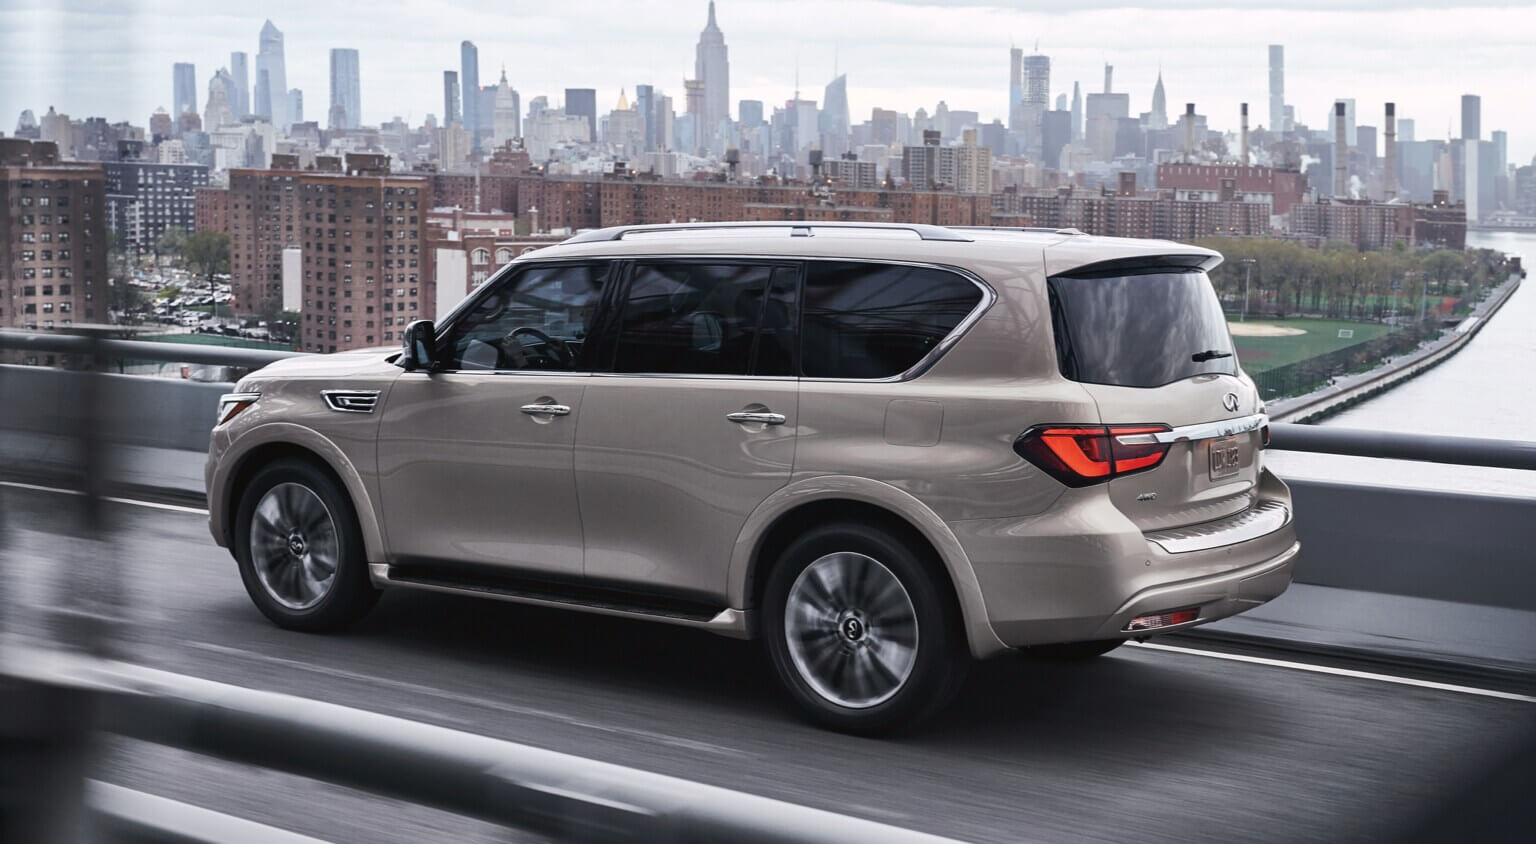 2021 Infiniti Qx80 with All-Mode 4wd